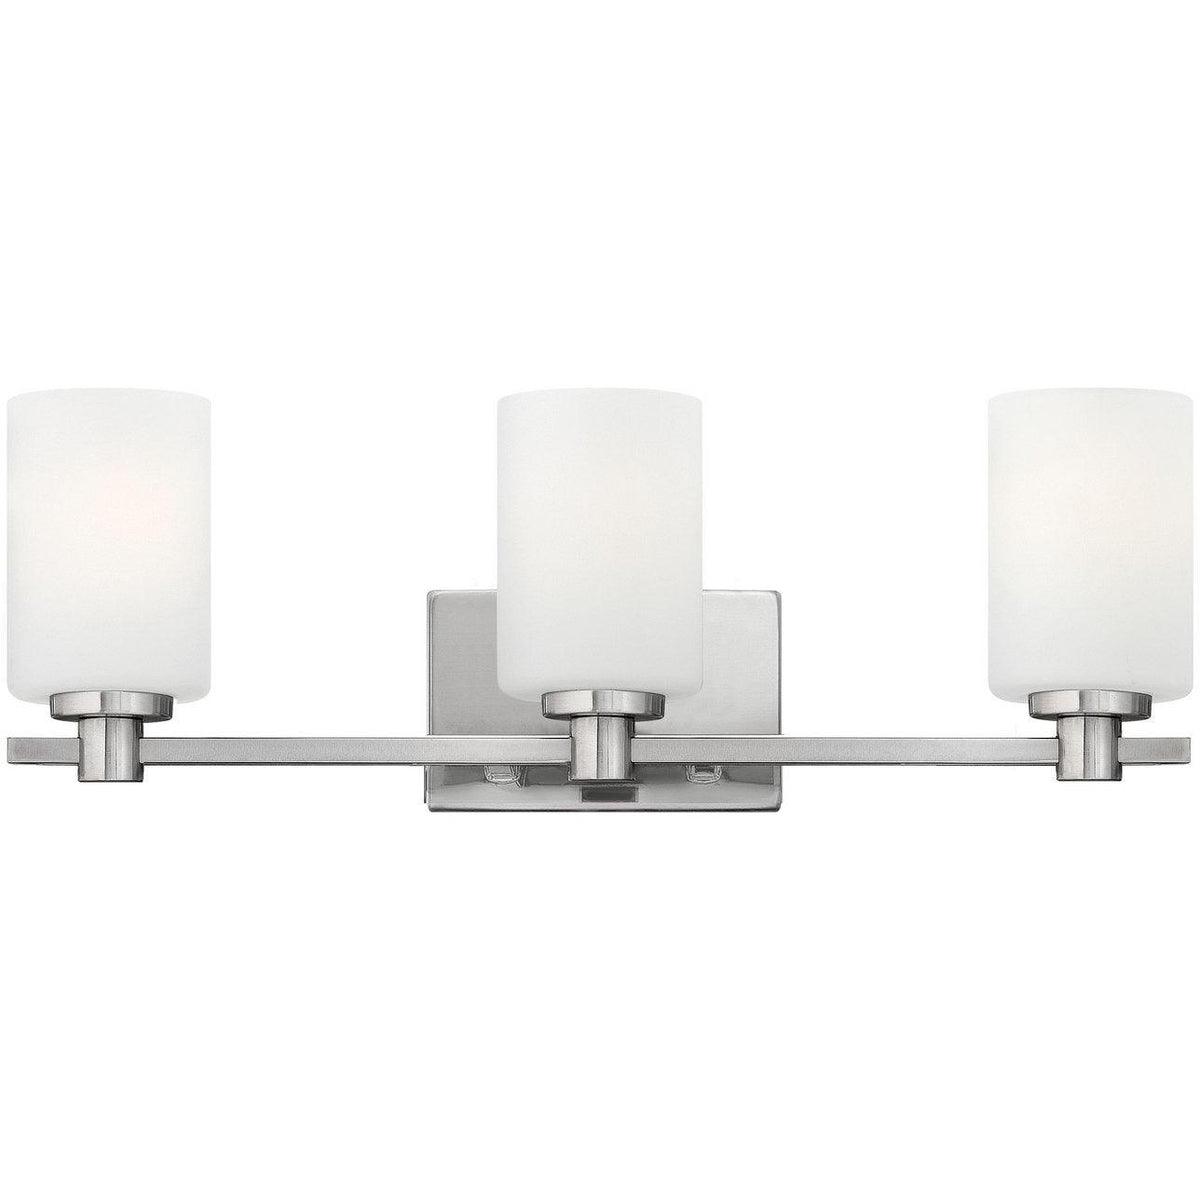 Hinkley Canada - 54623BN - Three Light Bath - Karlie - Brushed Nickel